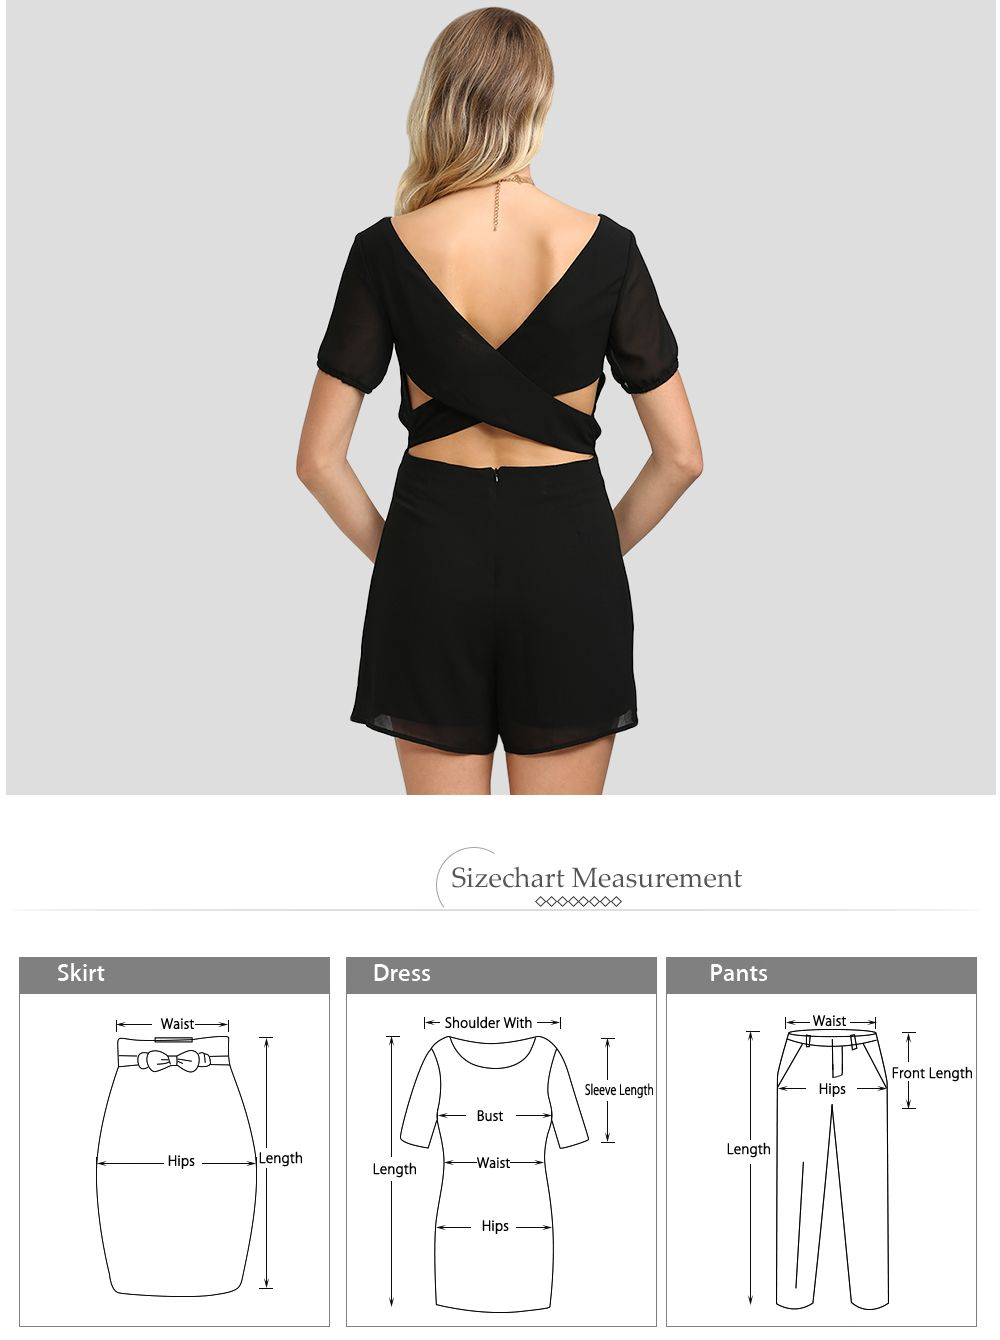 Sexy Plunging Neck Cut Out Self-tie Solid Color Women Chiffon Romper